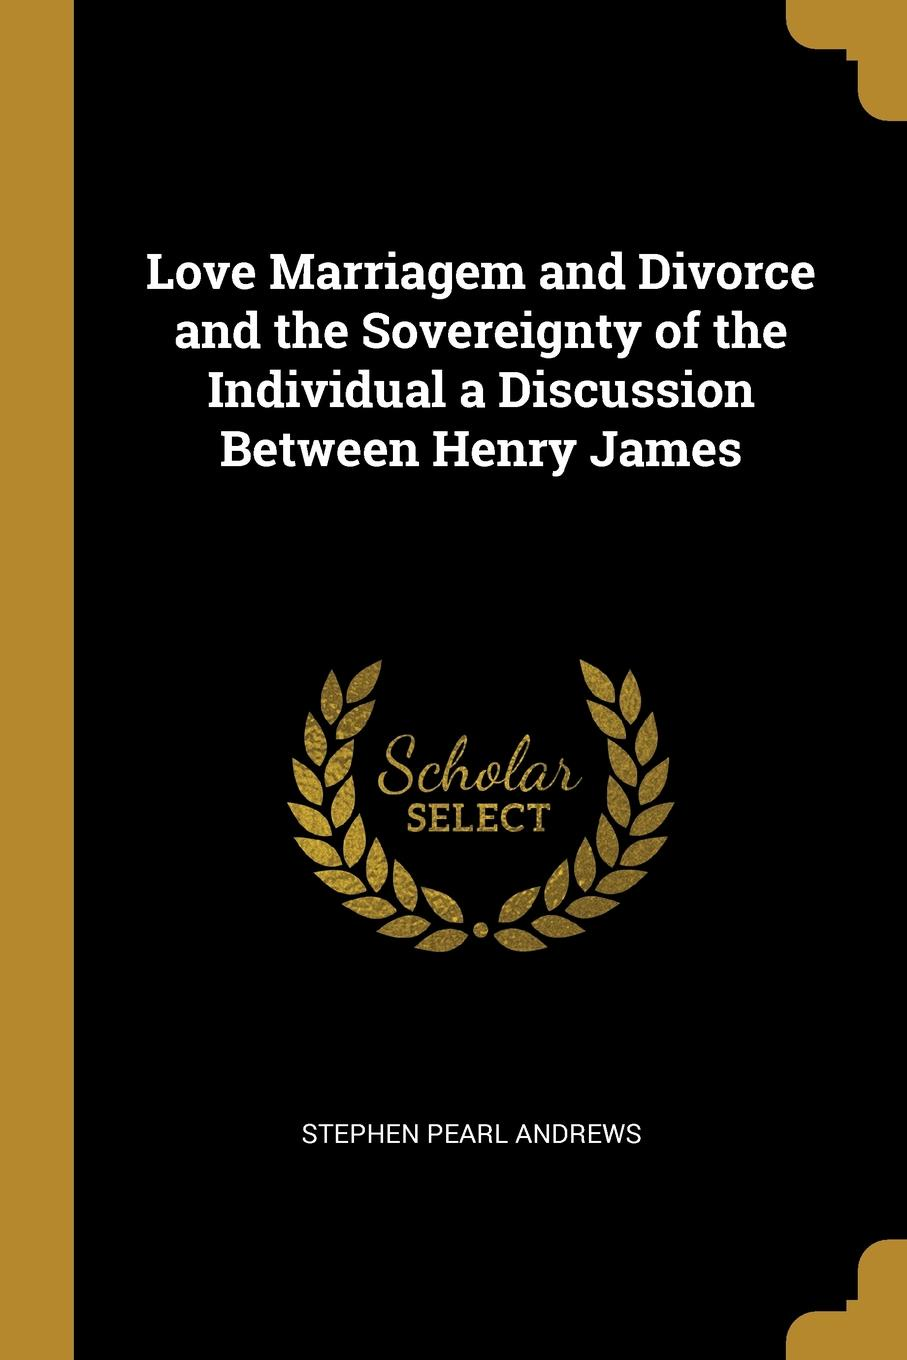 Stephen Pearl Andrews Love Marriagem and Divorce and the Sovereignty of the Individual a Discussion Between Henry James